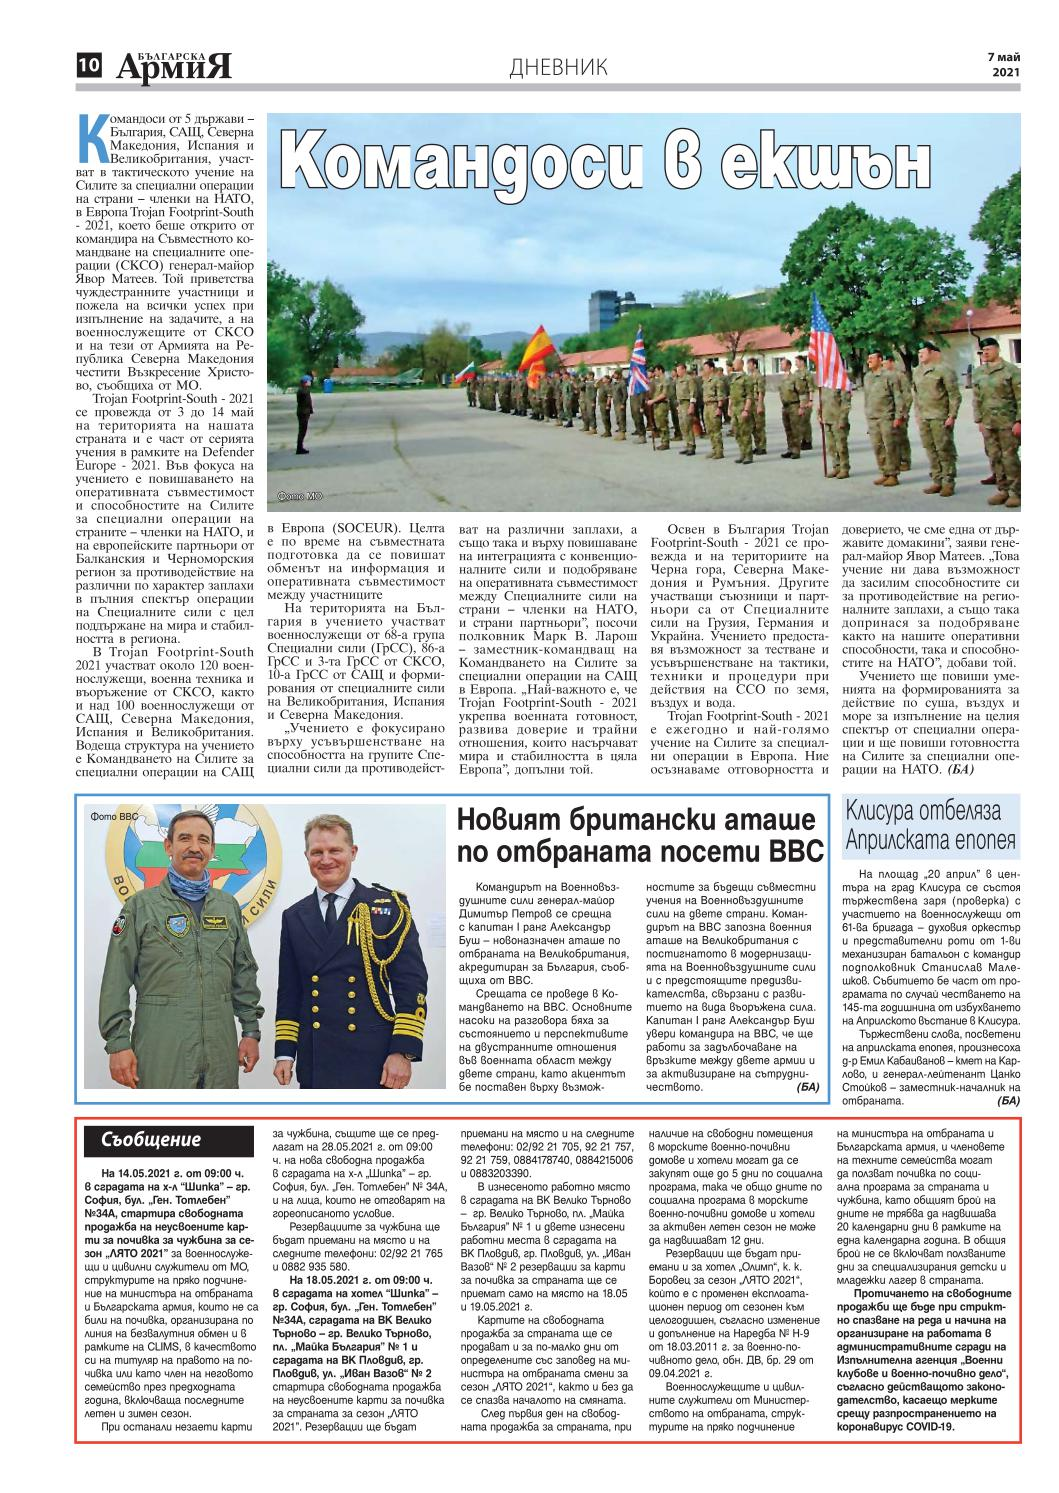 https://armymedia.bg/wp-content/uploads/2021/05/10.page1_.jpg